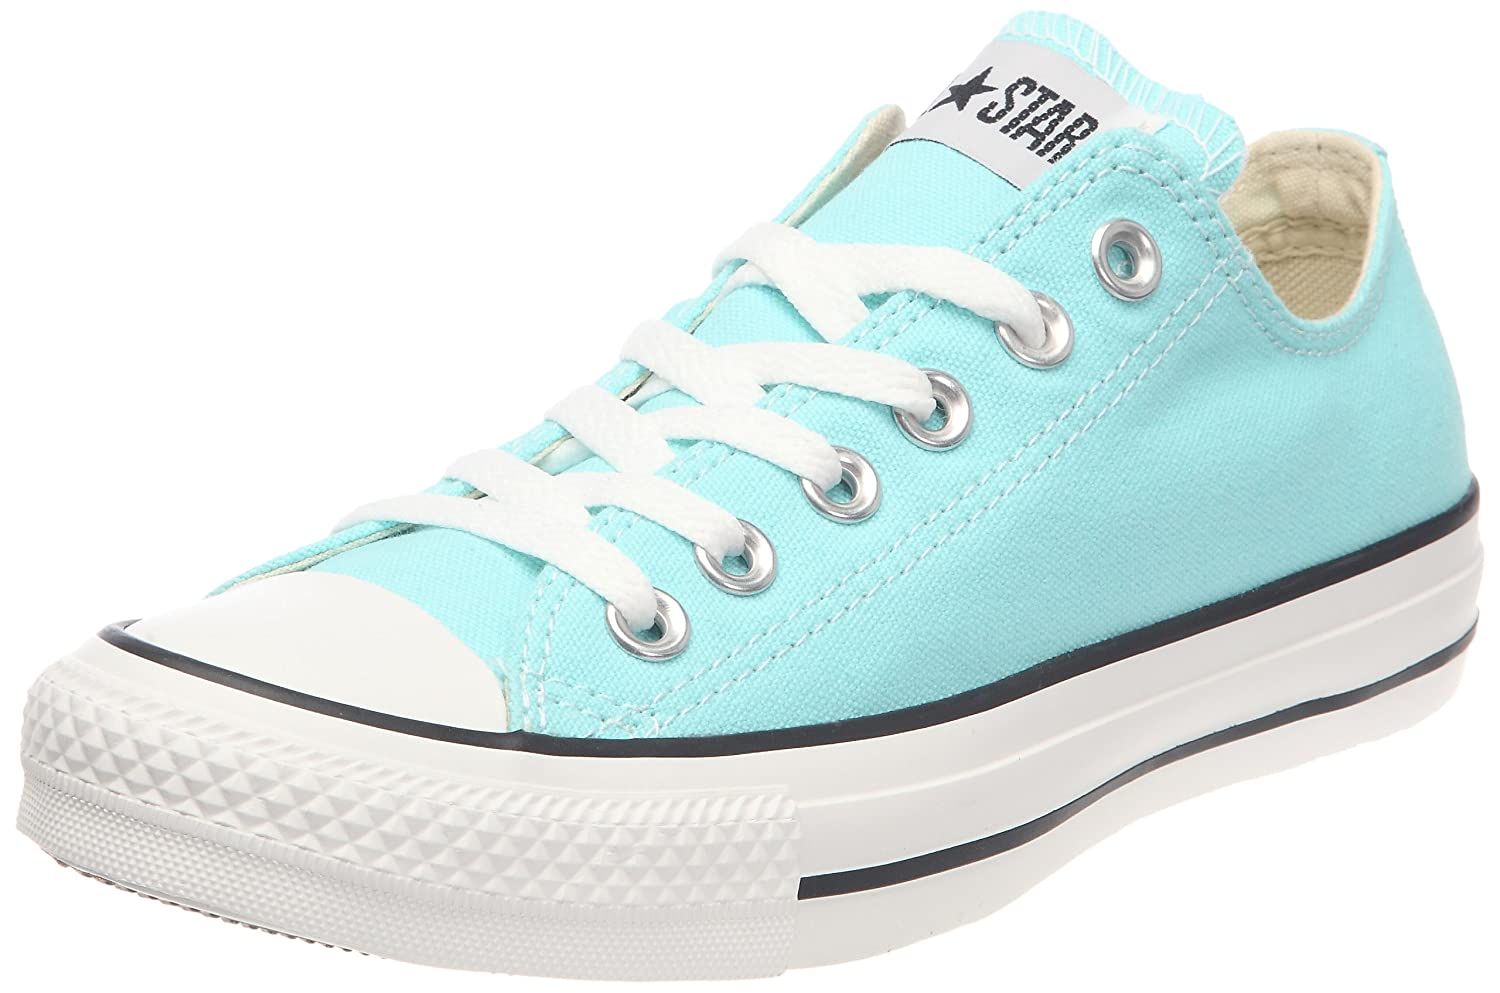 CONVERSE Designer Chucks Schuhe - ALL STAR -  M8/L10|Aruba Blue